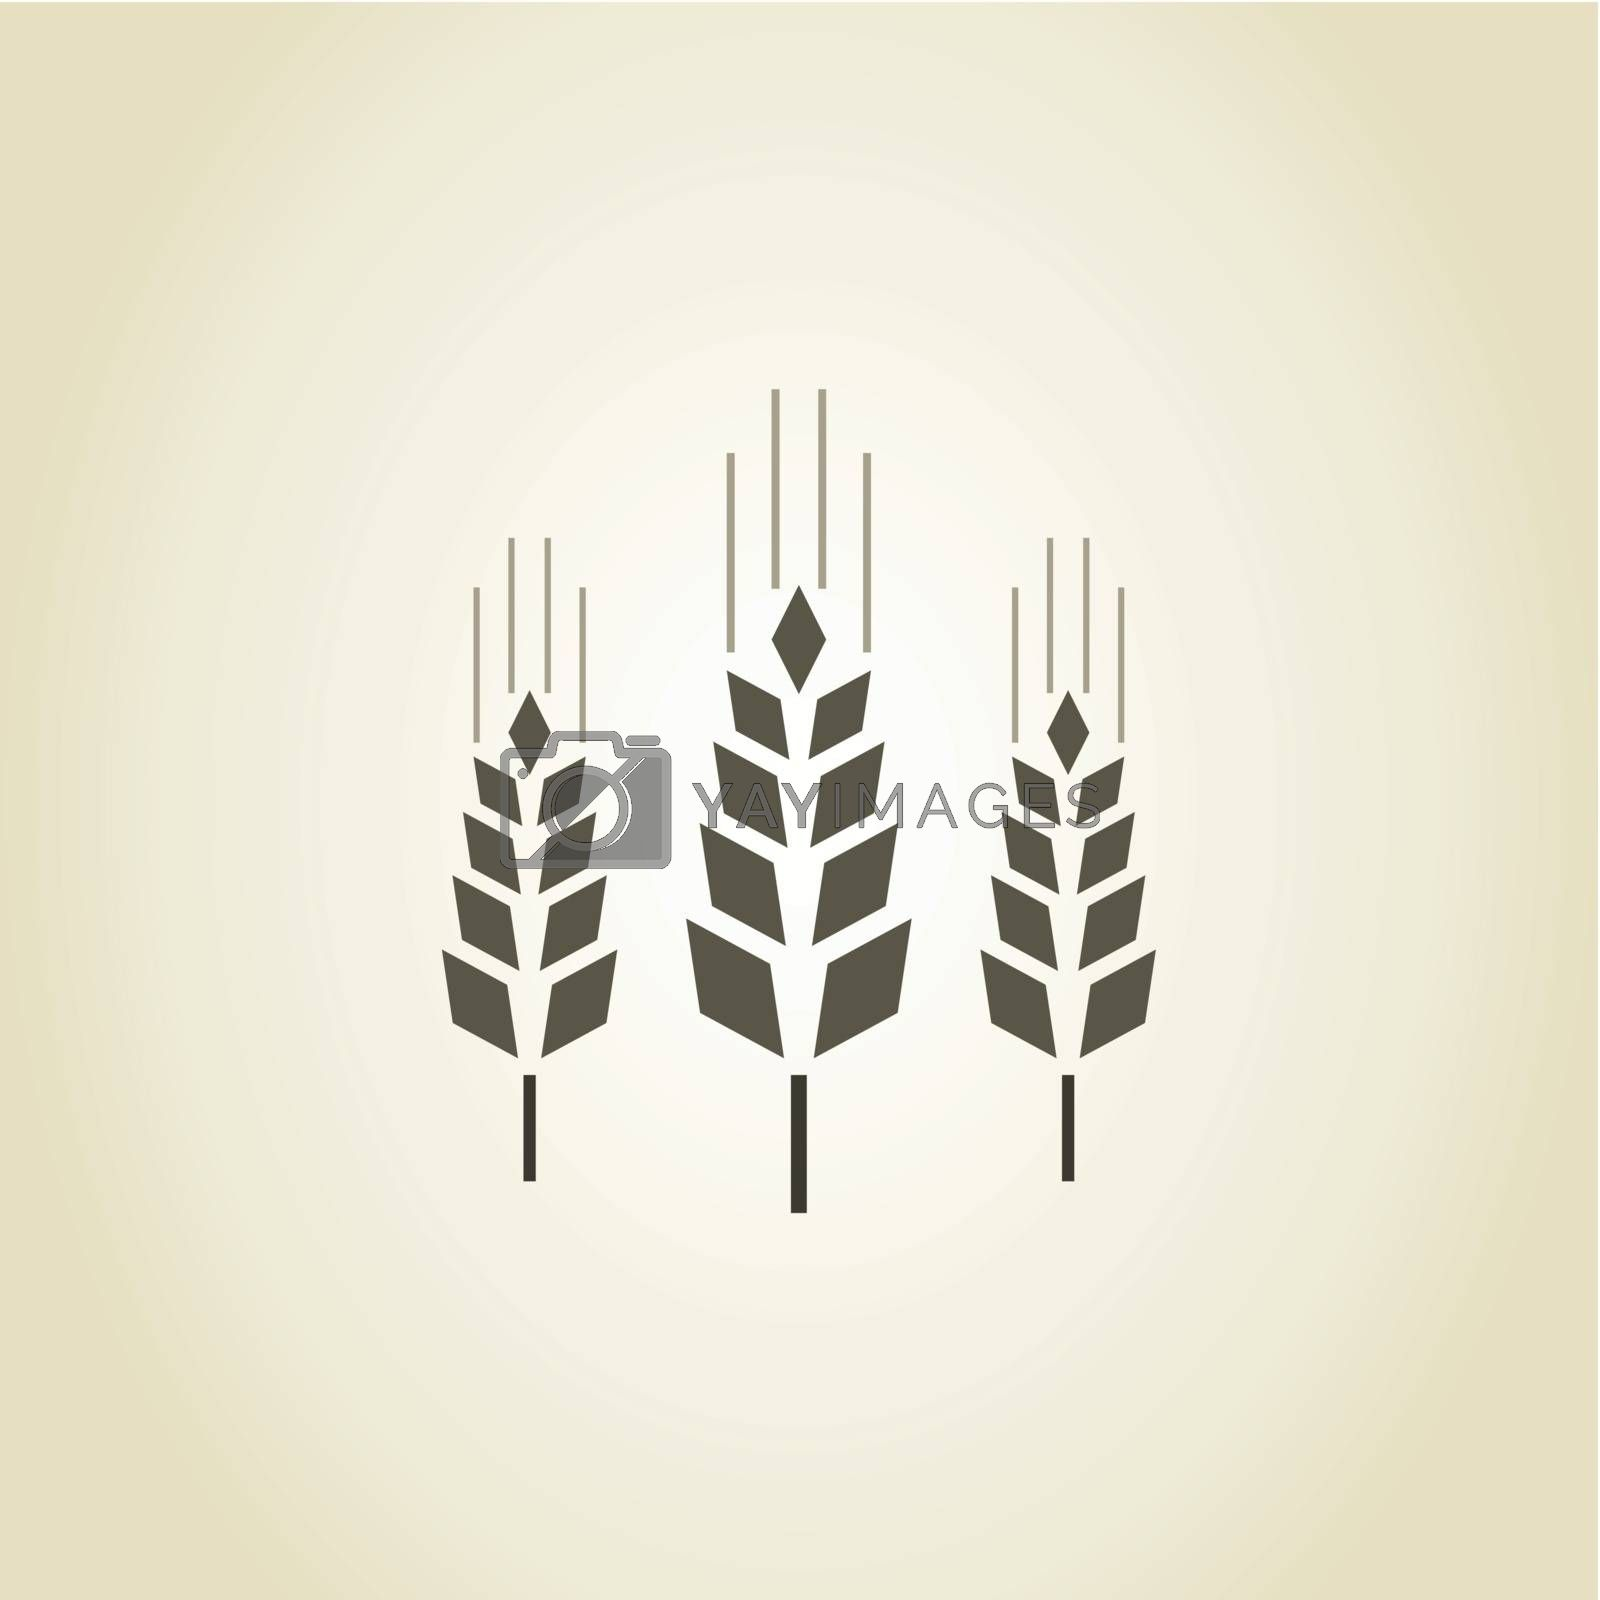 Three ears of wheat in agriculture